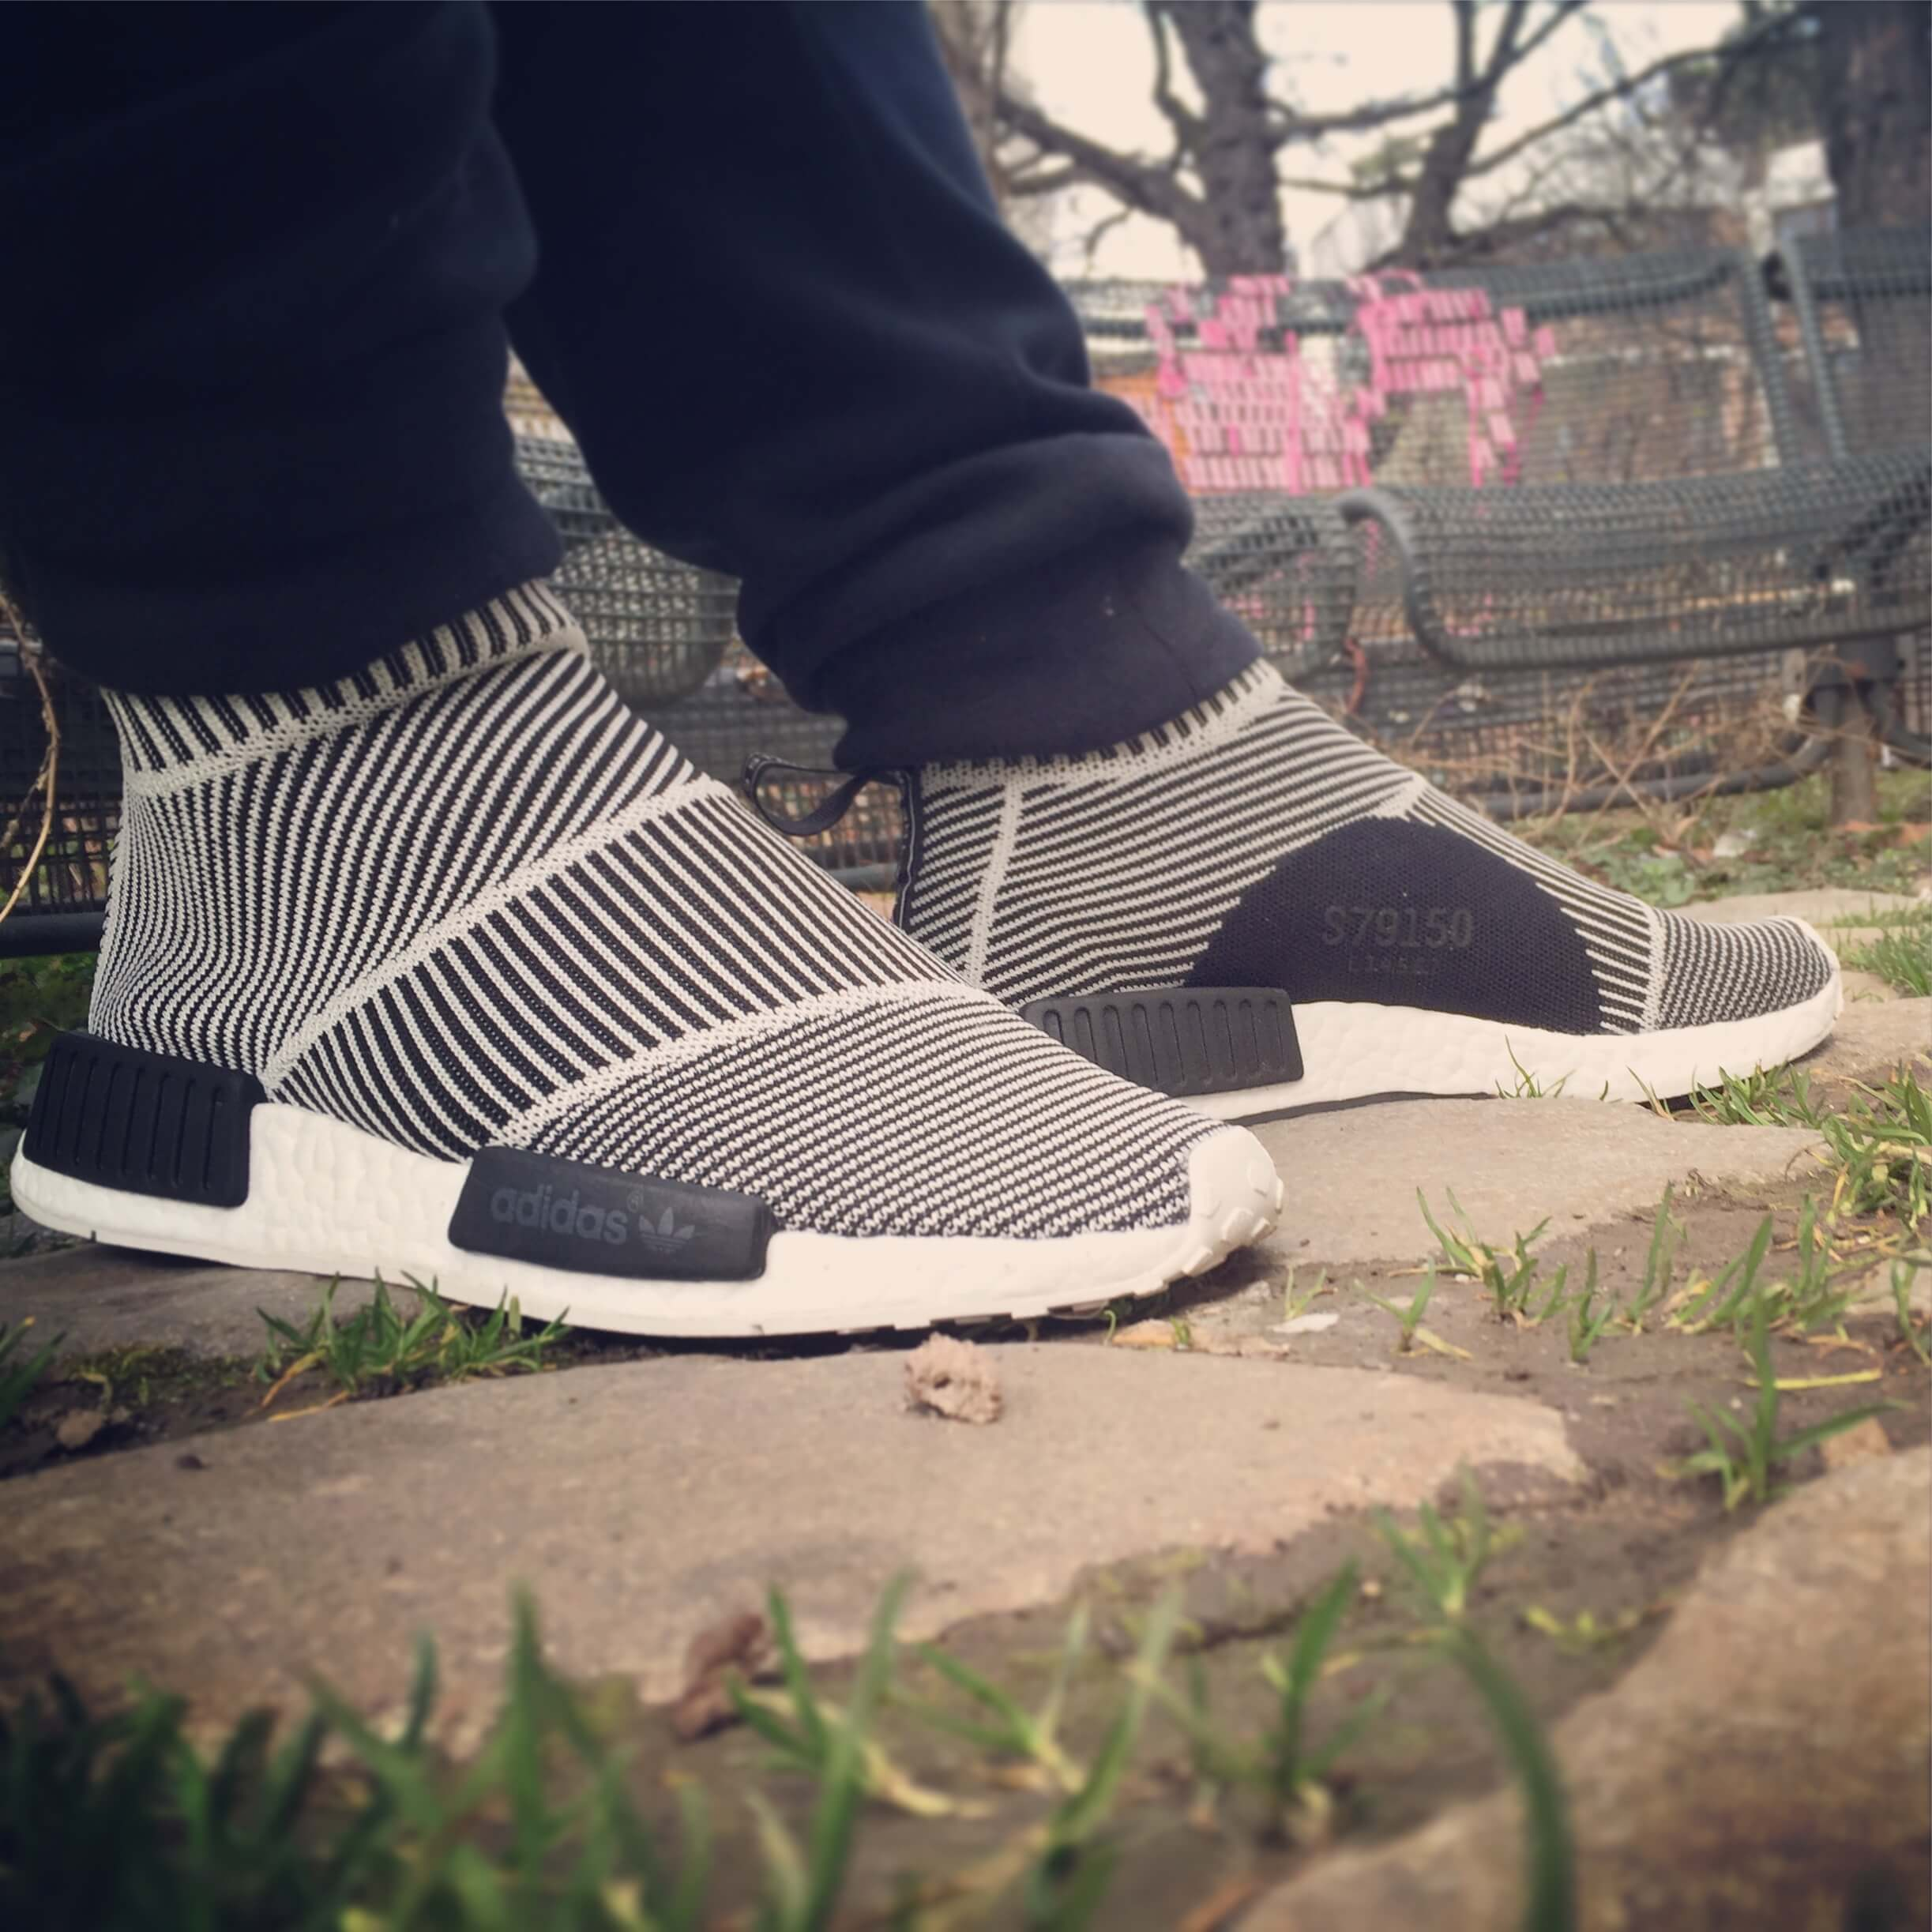 Adidas-NMD-City-Sock-Side-View_2-Onfeet